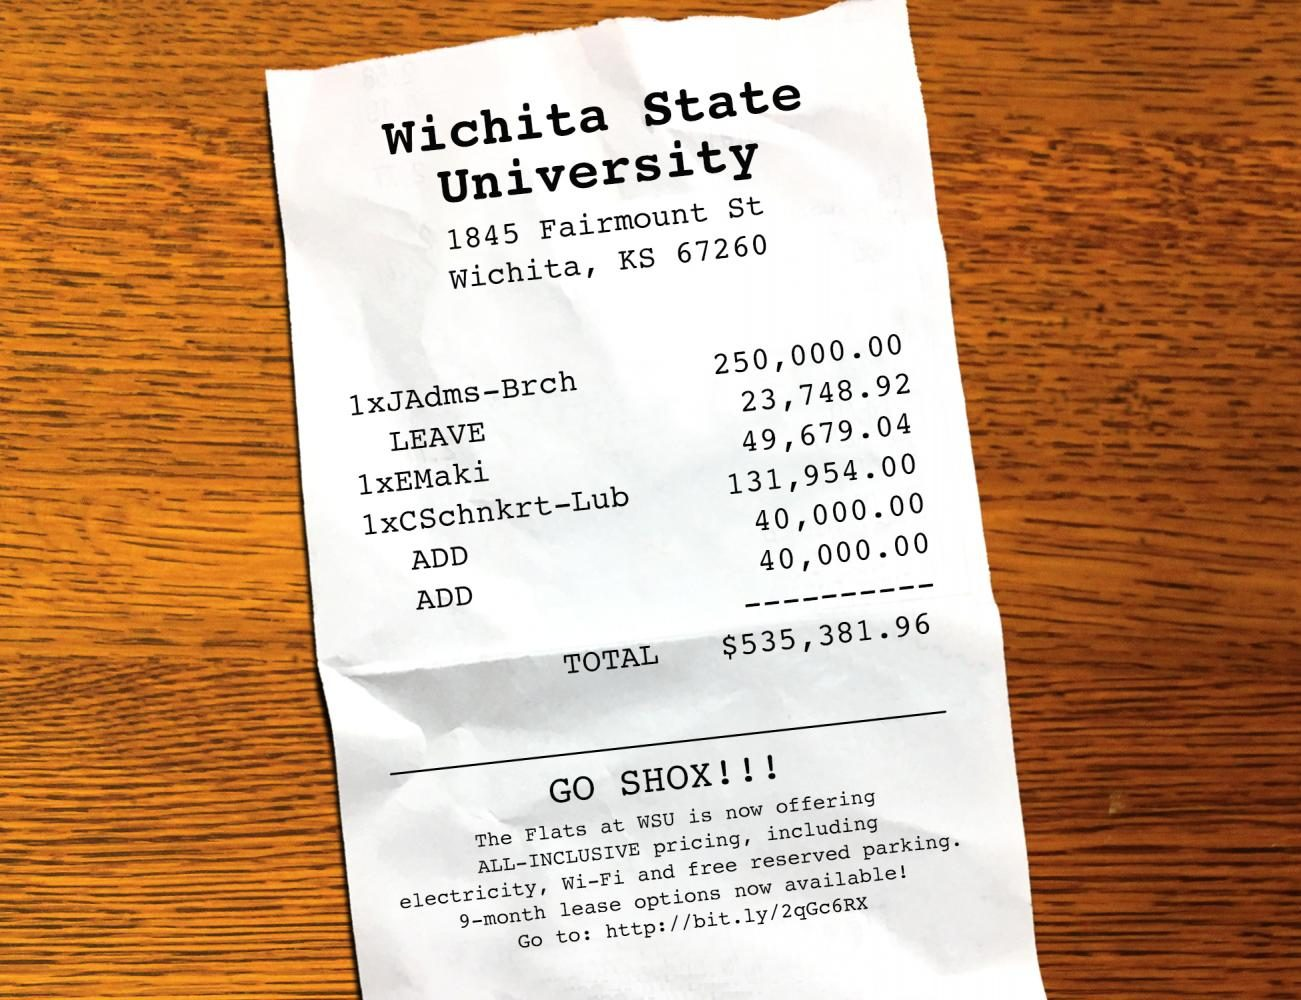 Photo+illustration+detailing+payments+made+to+Wichita+State+employees+who+left+their+positions+last+school+year.+